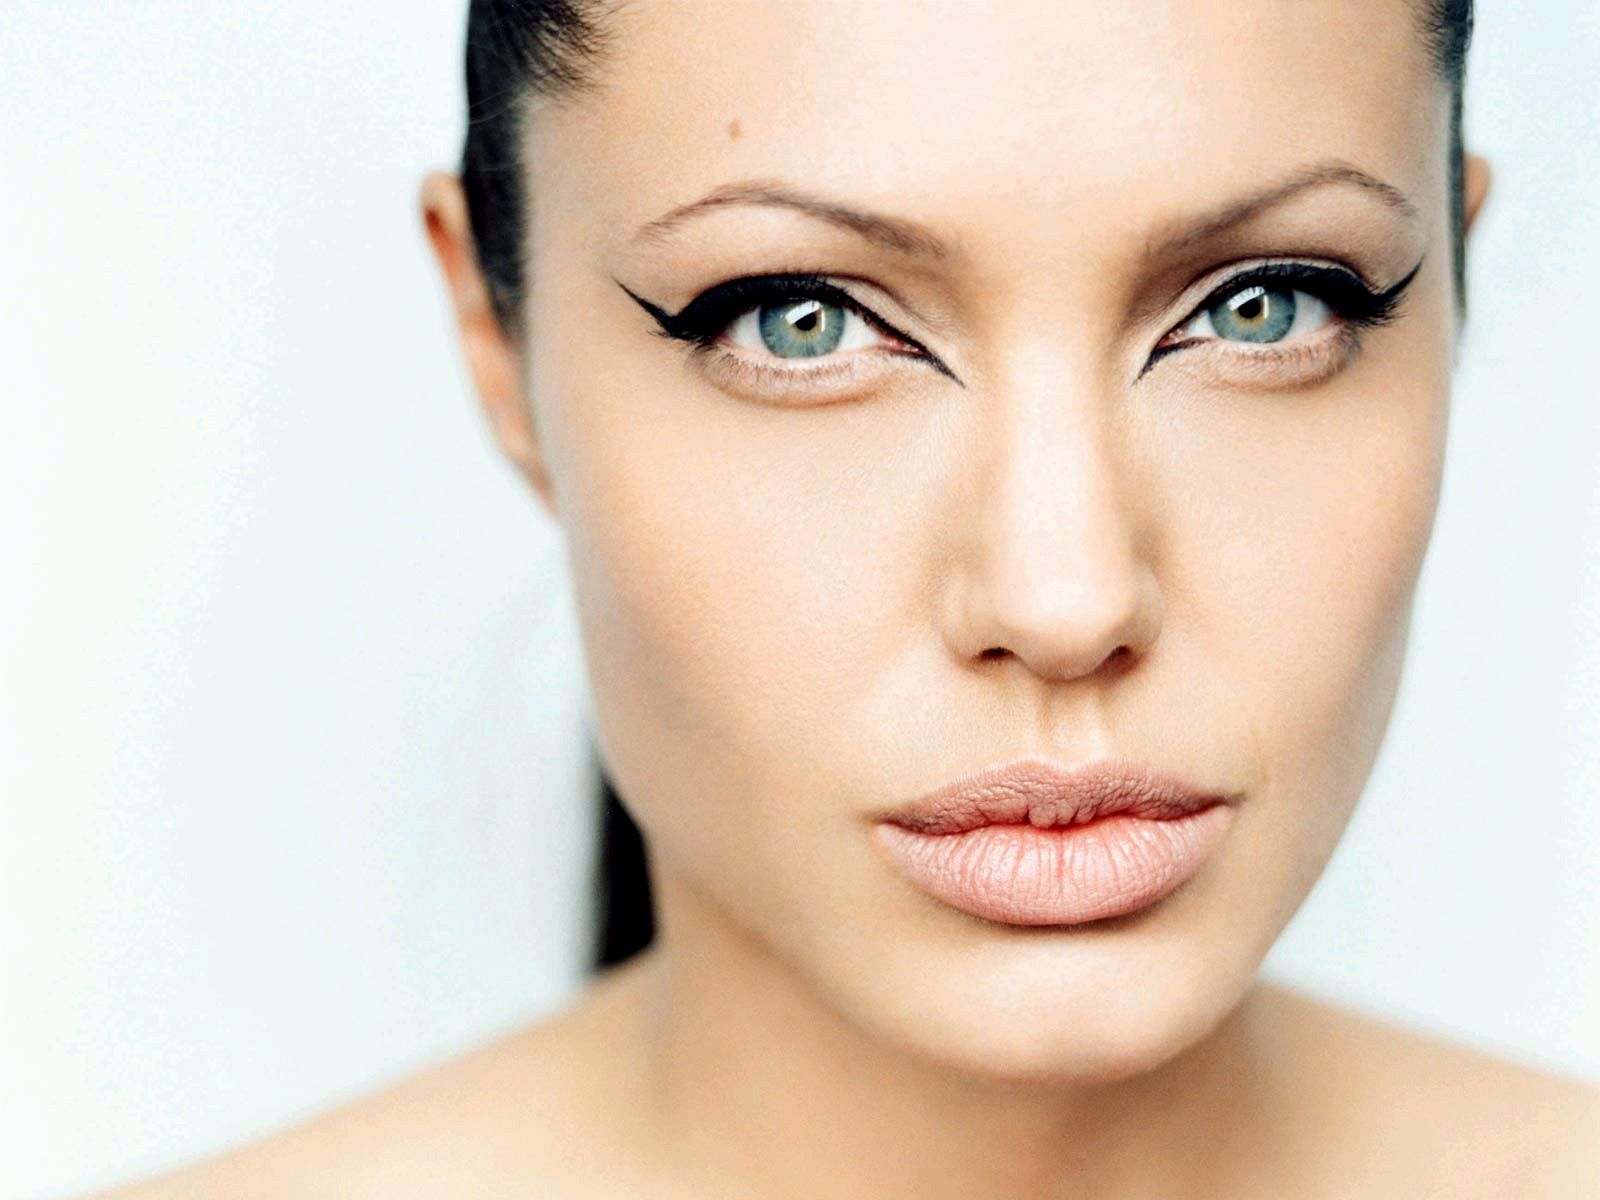 angelina jolie photos: